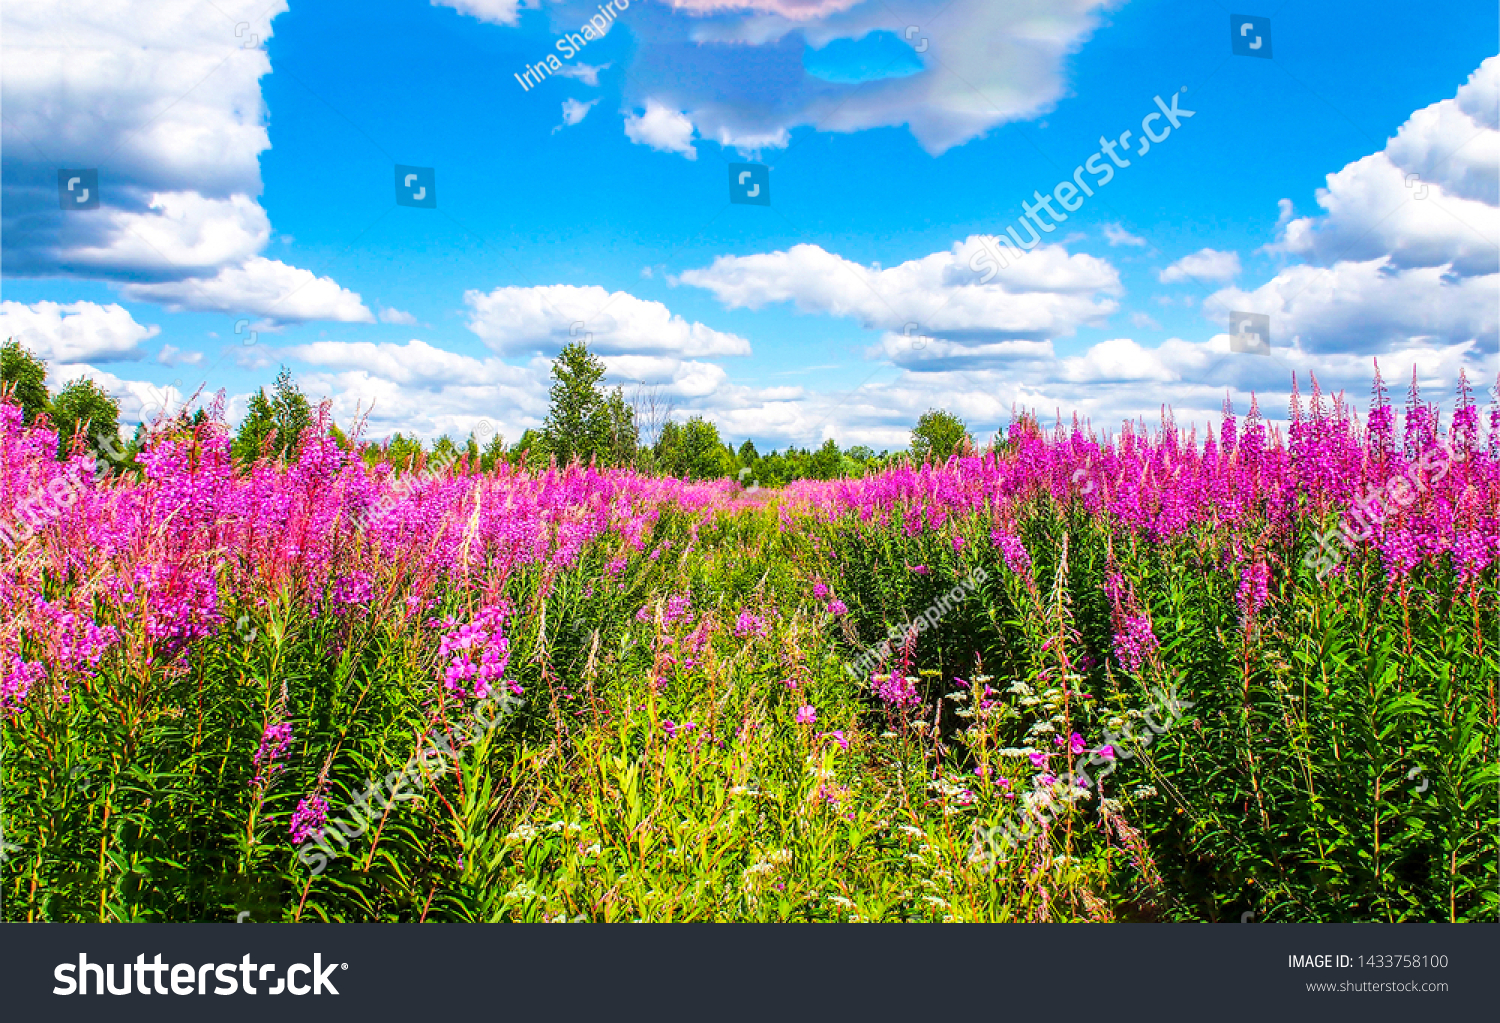 Summer meadow flowers. Summer meadow flowers landscape. Summer meadow flowers blue sky white clouds. Summer meadow flowers view #1433758100